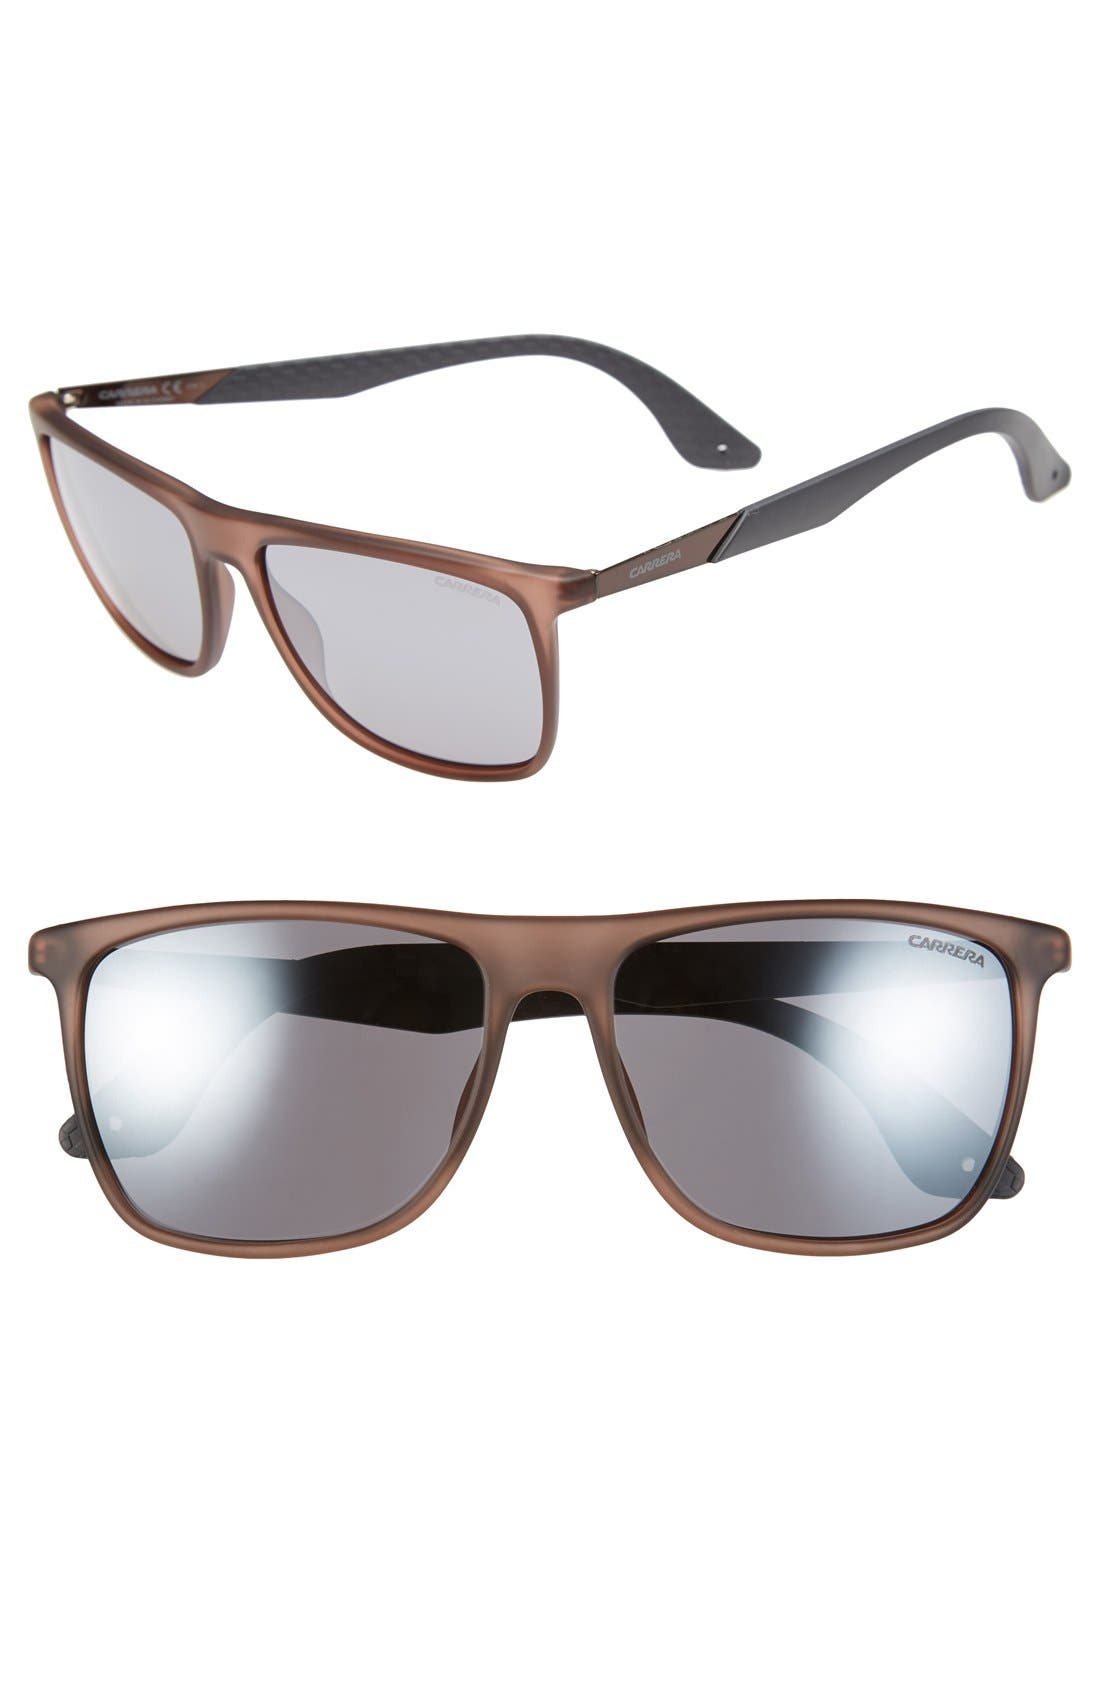 Carrera Eyewear 5m Retro Sunglasses -